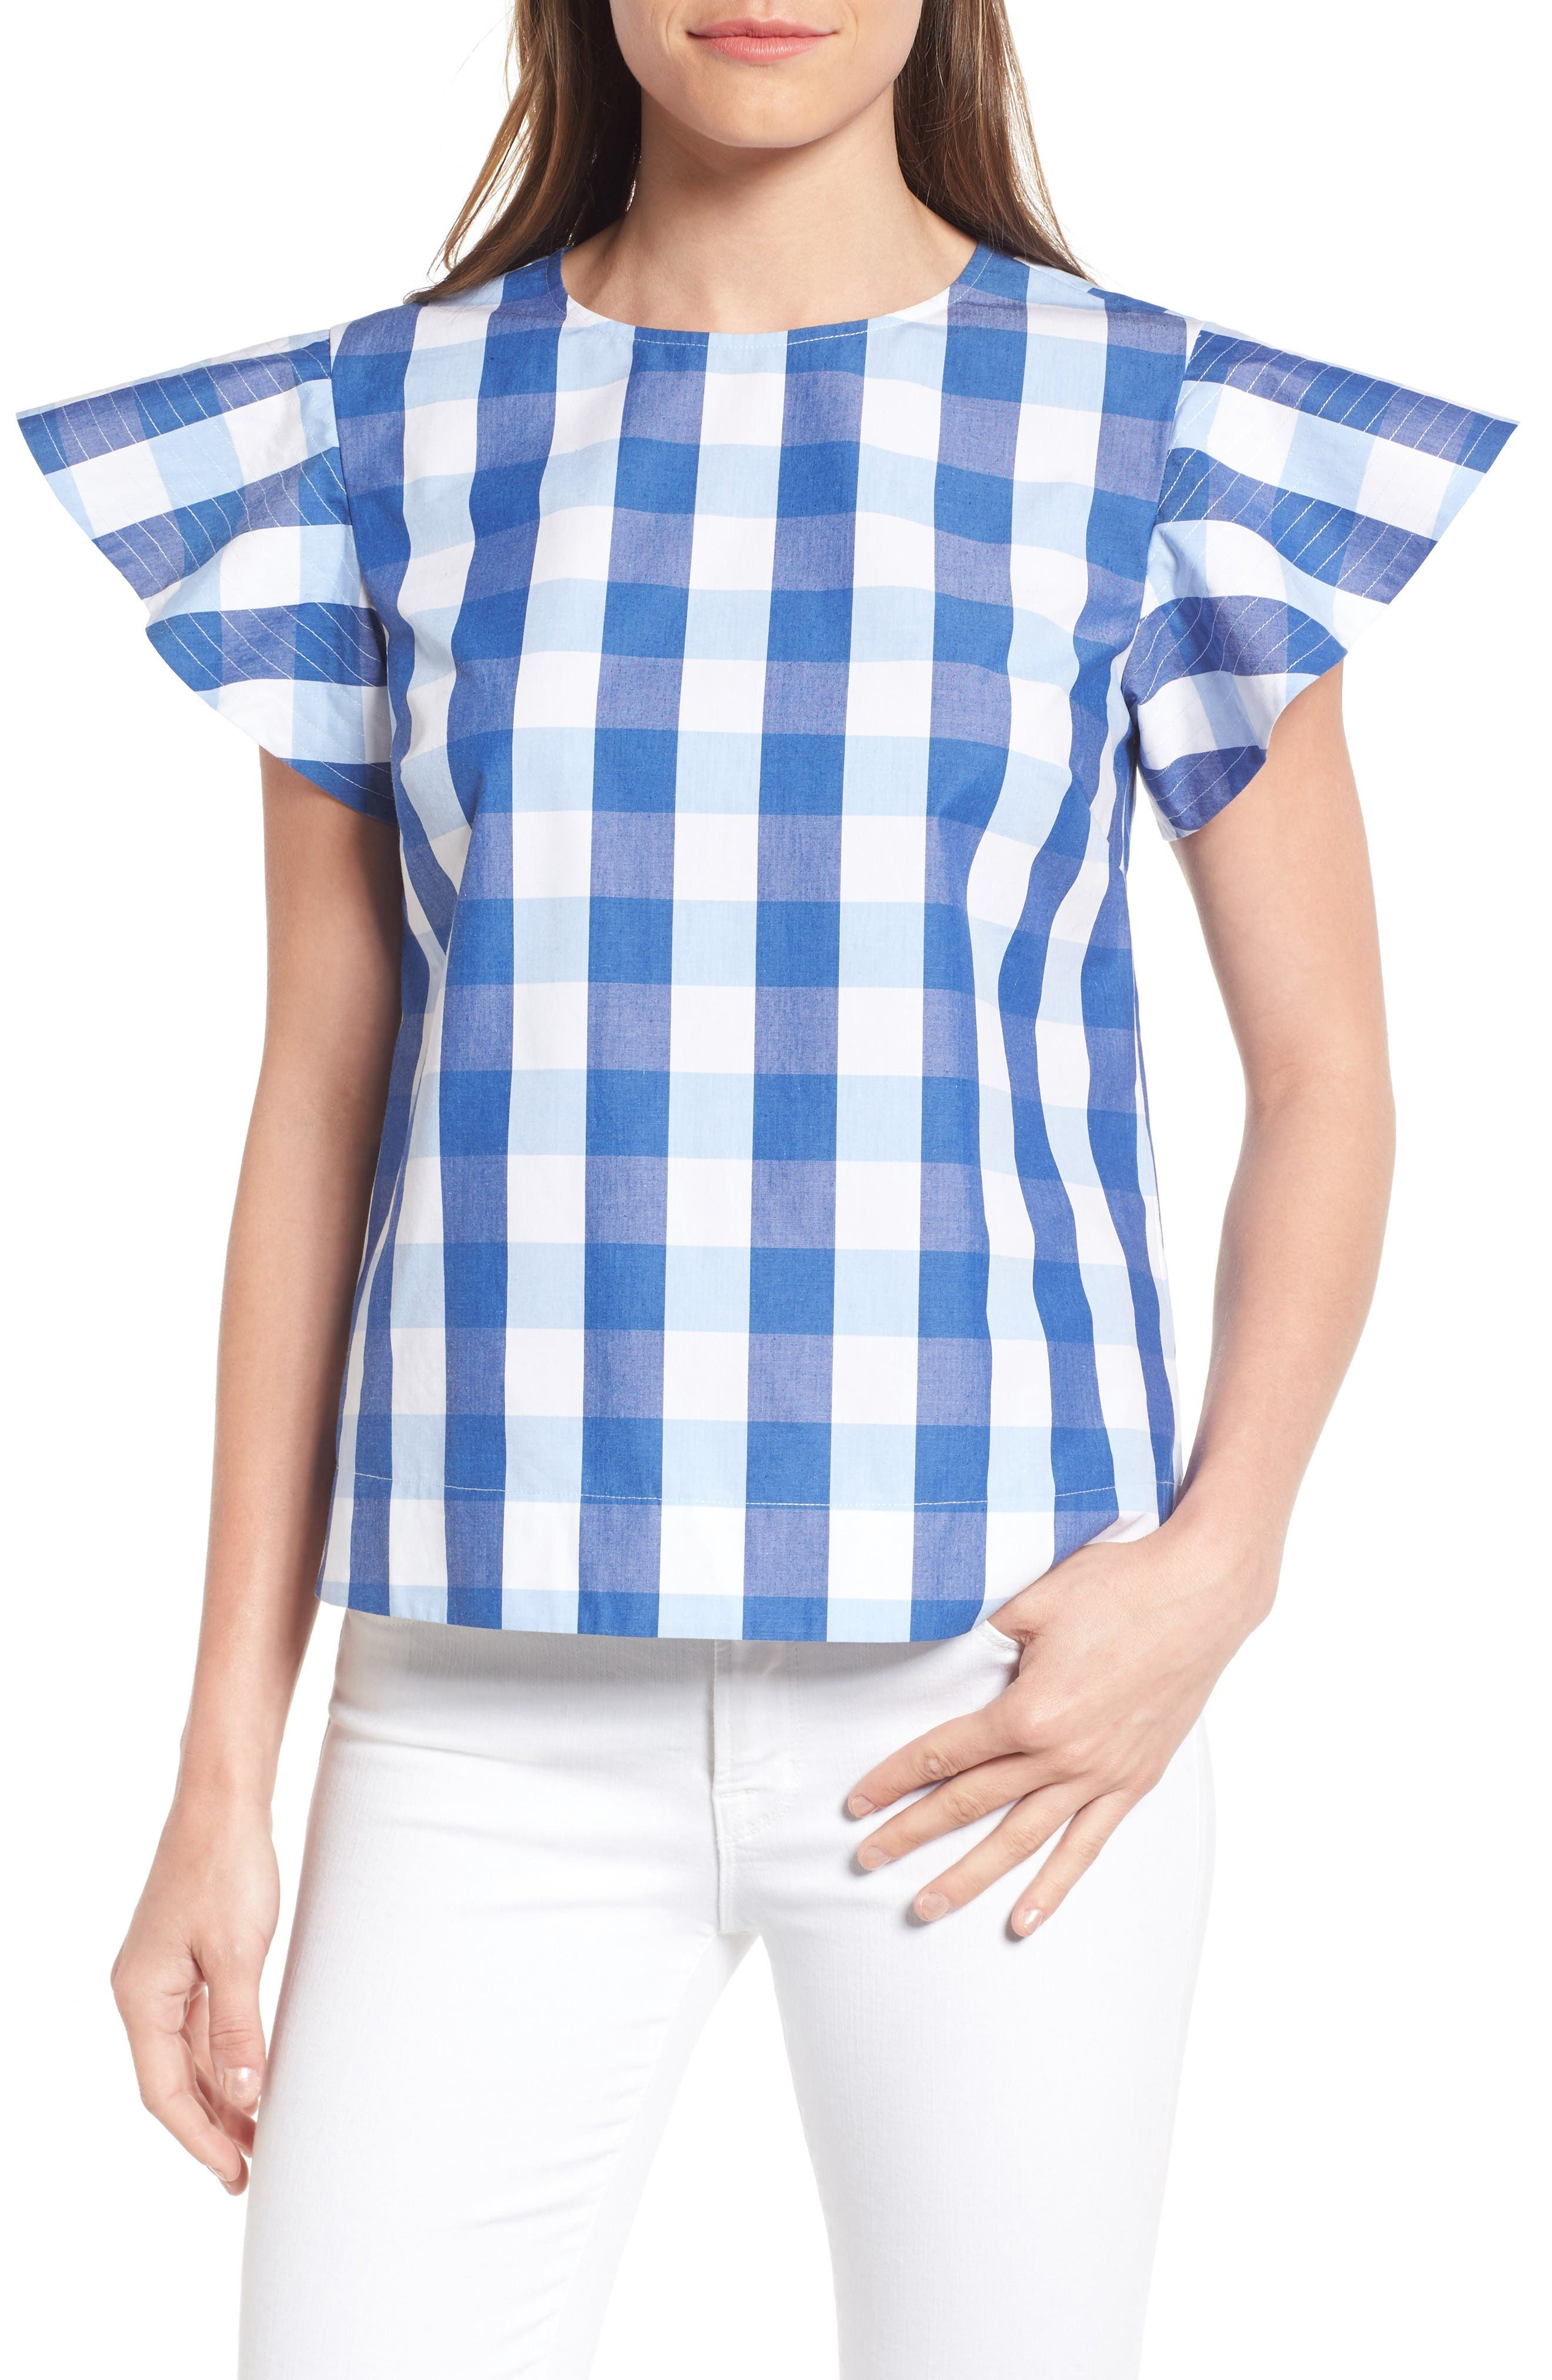 Alternate Image 1 Selected - Draper James Cloister Gingham Cotton Top (Nordstrom Exclusive)